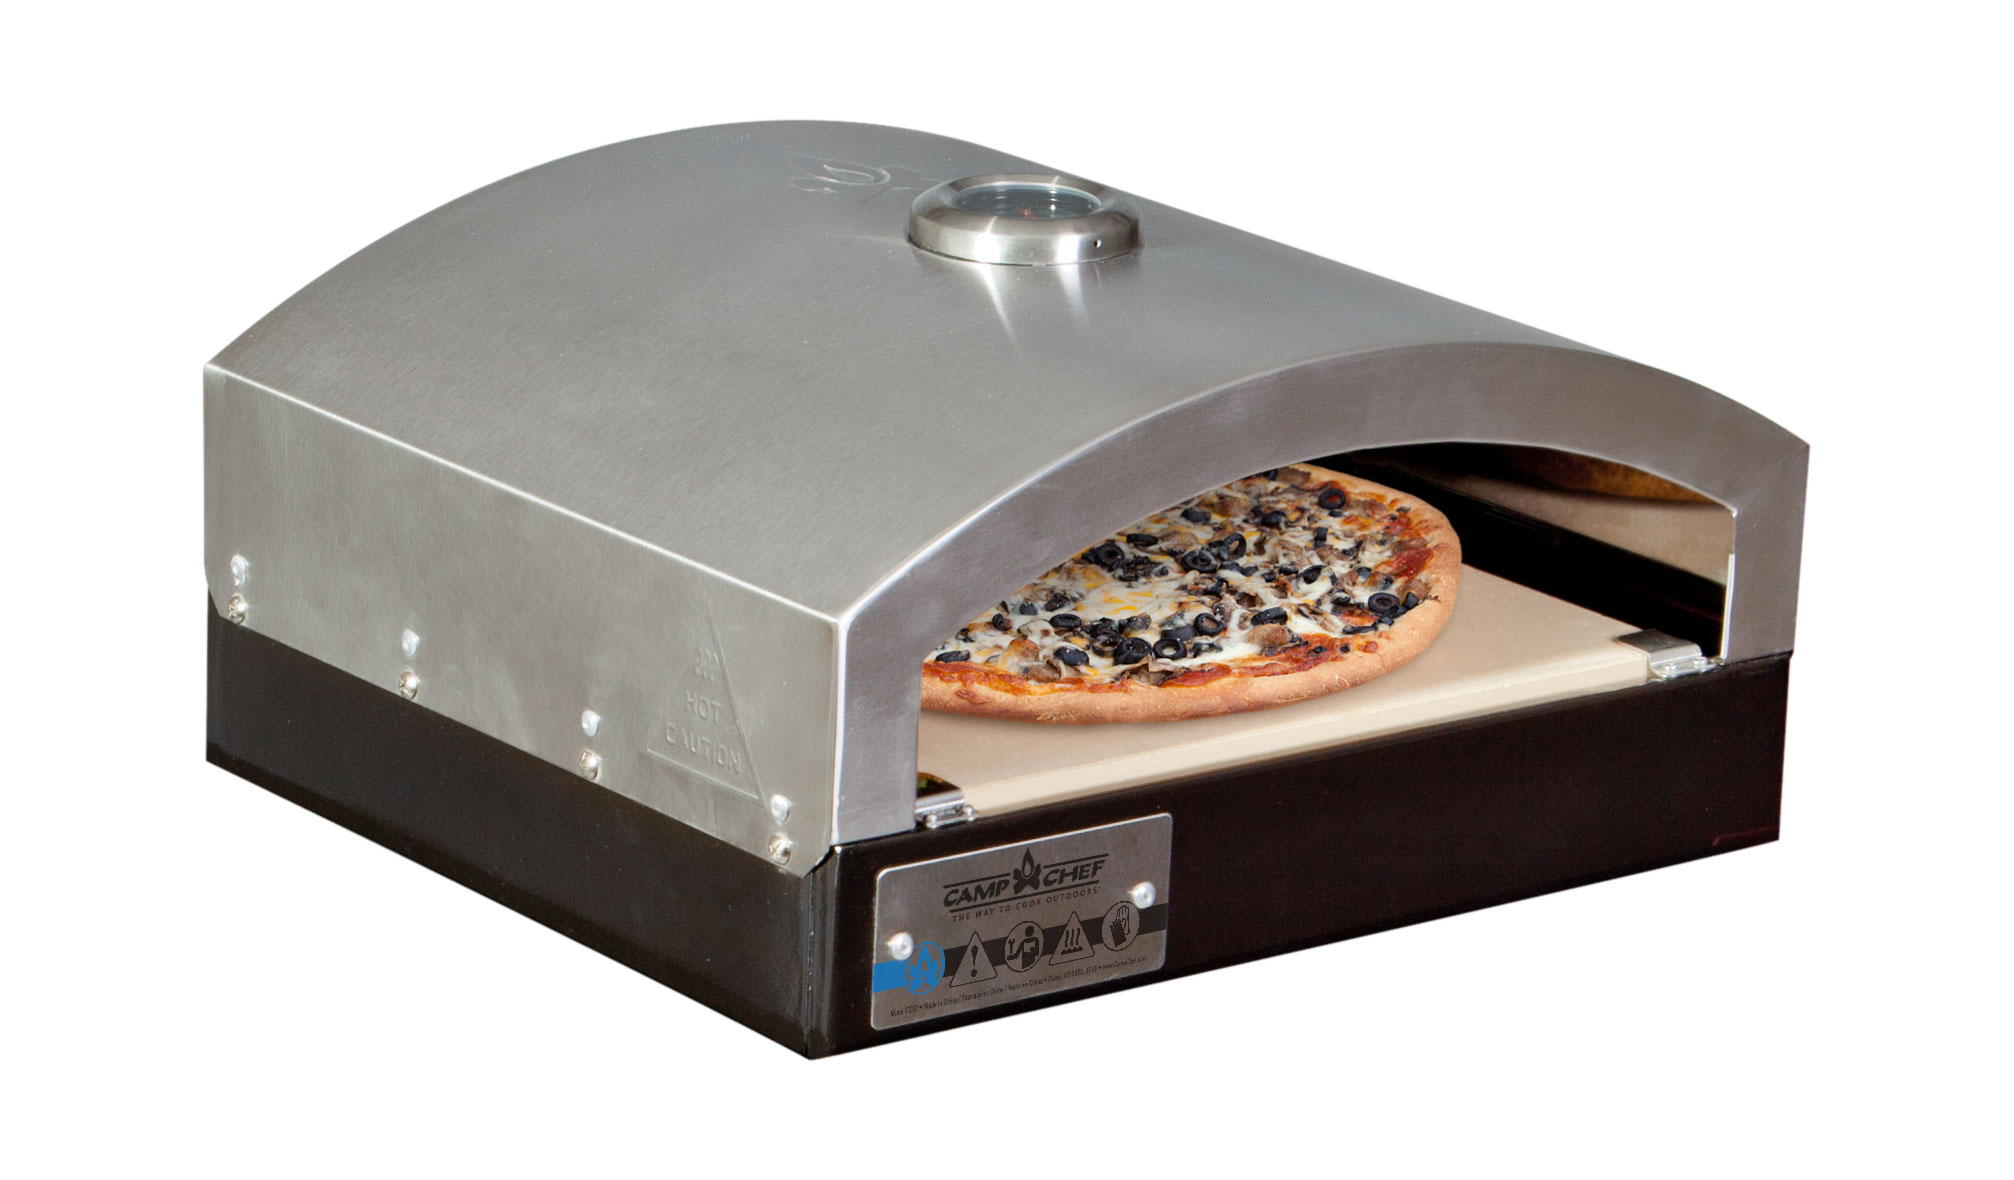 Pizzaofen Für Gasgrill : Camp chef pizzaofen box 30 artisan grill gasgrill gas backofen